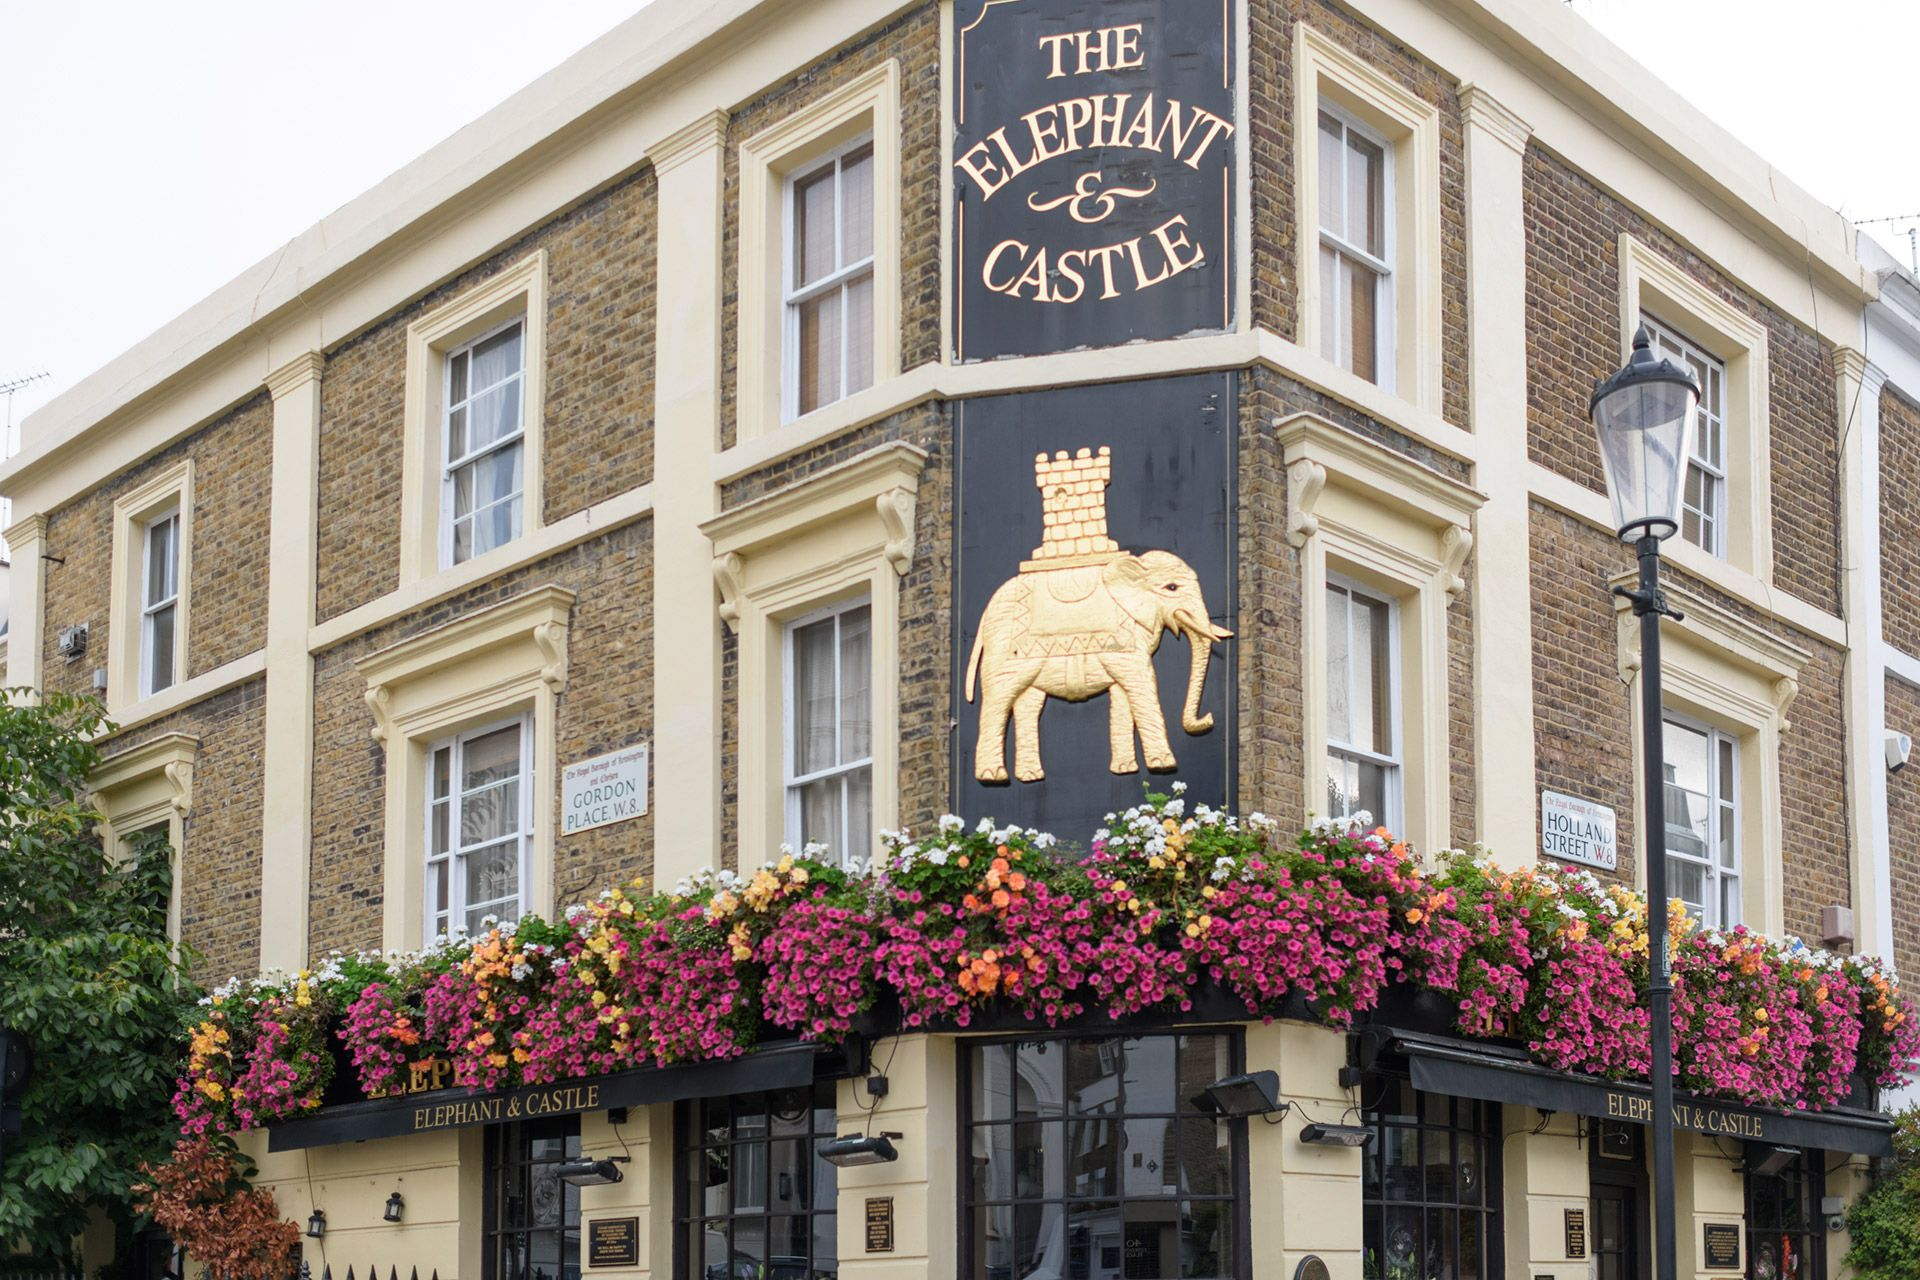 The Elephant and Castle pub in London